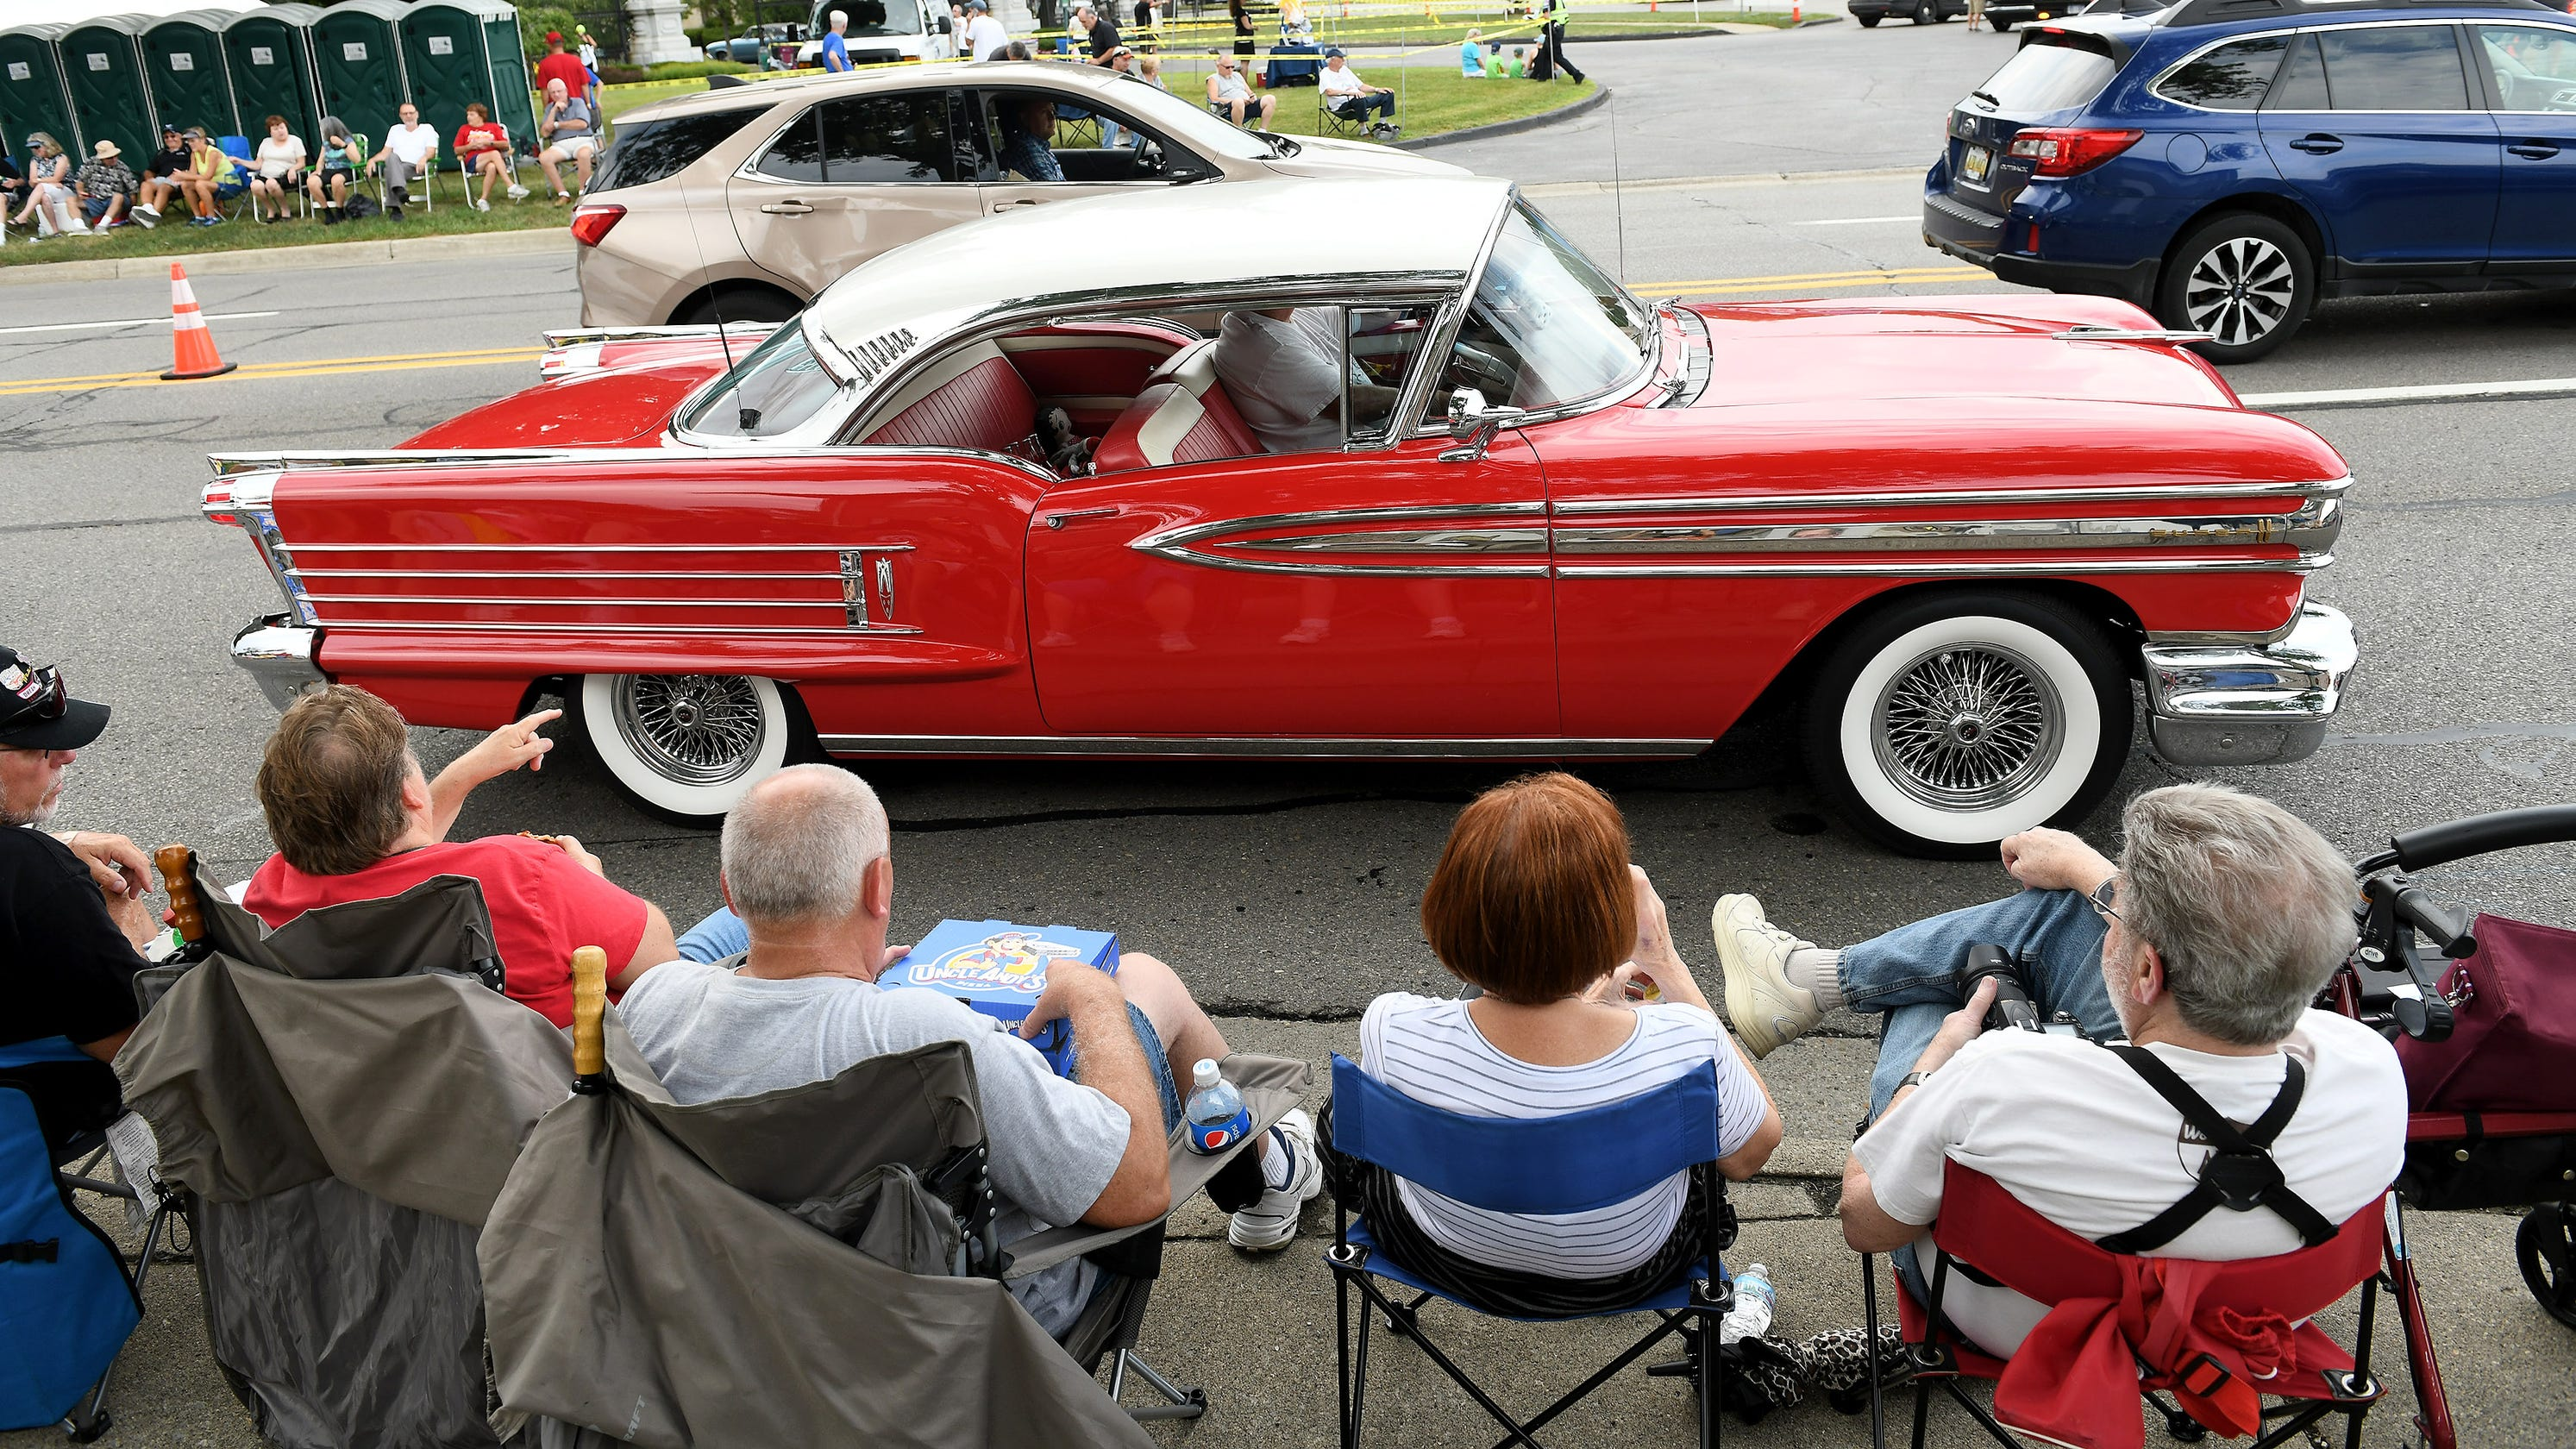 Interest In Woodward Dream Cruise Driven By Nostalgia History Love Of Cars